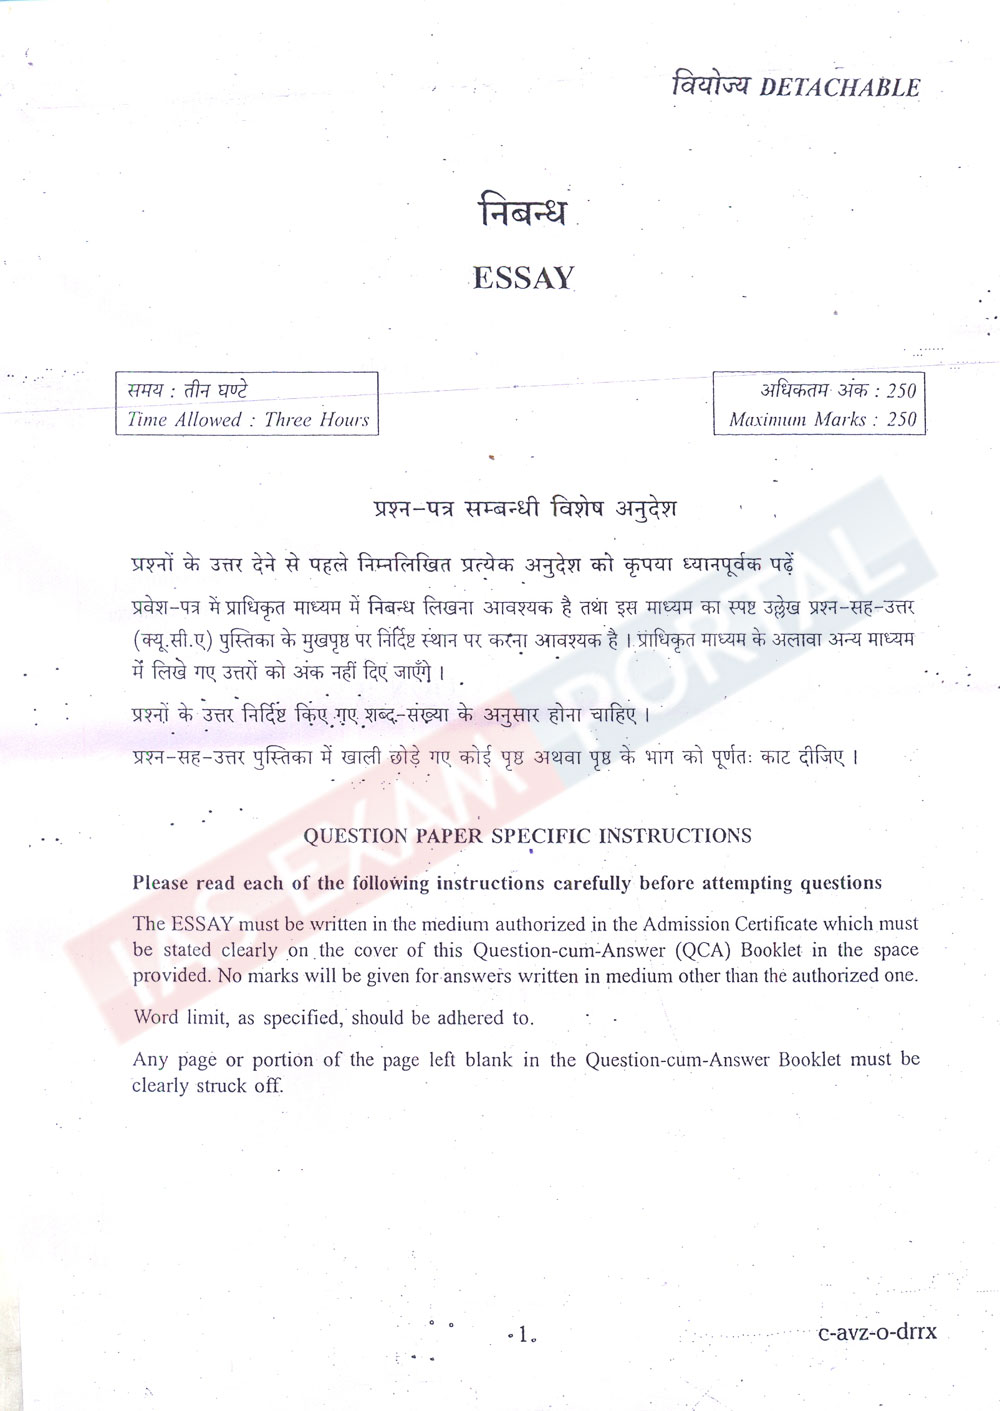 Research Paper Essay Examples Section  B Mahatma Gandhi Essay In English also Sample Essay Papers Download Upsc Ias Mains  Essay Compulsory Question Paper  Argument Essay Thesis Statement